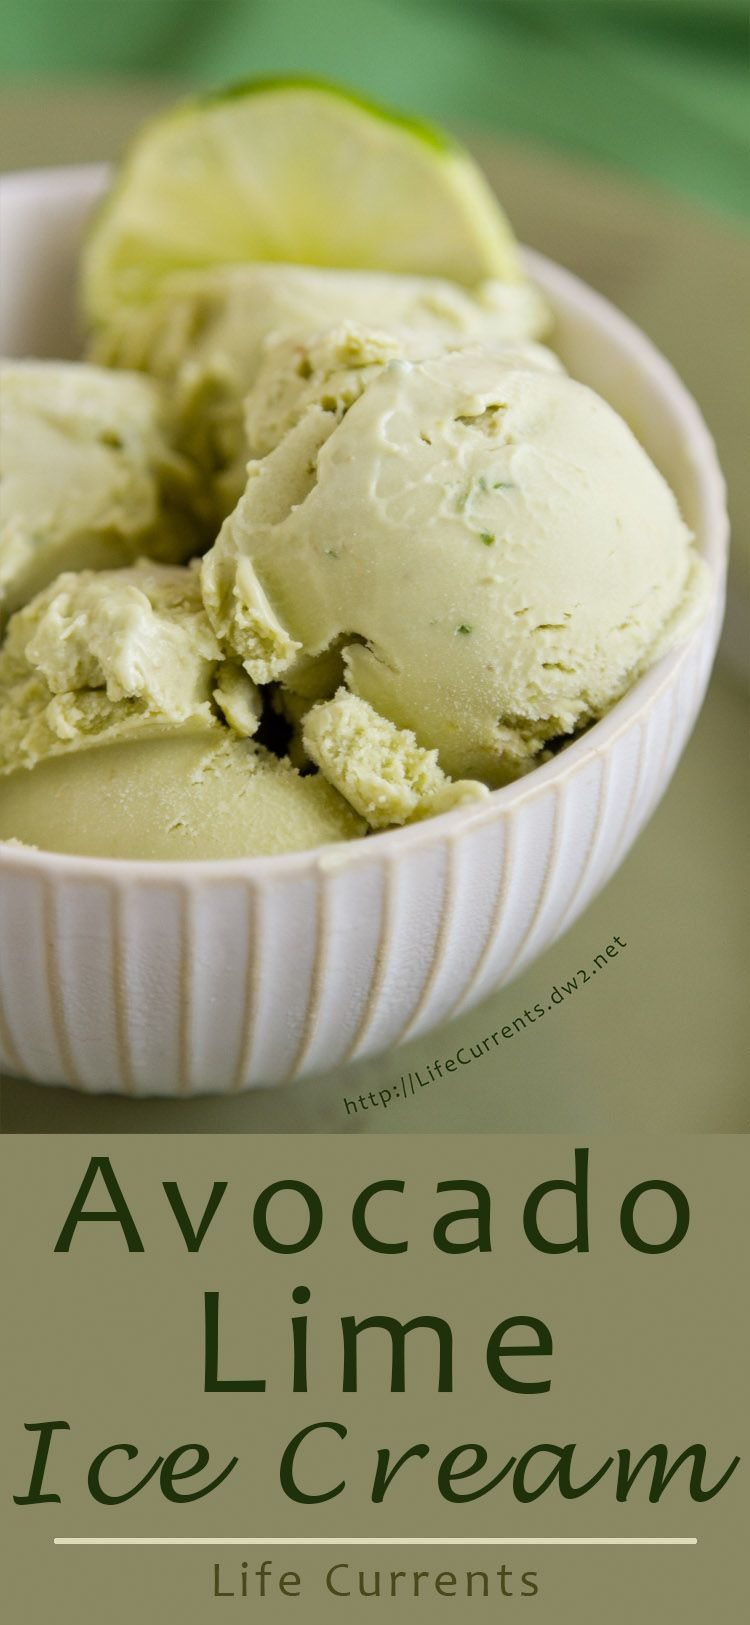 Avocado Lime Ice Cream - Rich creamy avocados totally lend themselves to a this custard-based ice cream that isn't too much work.